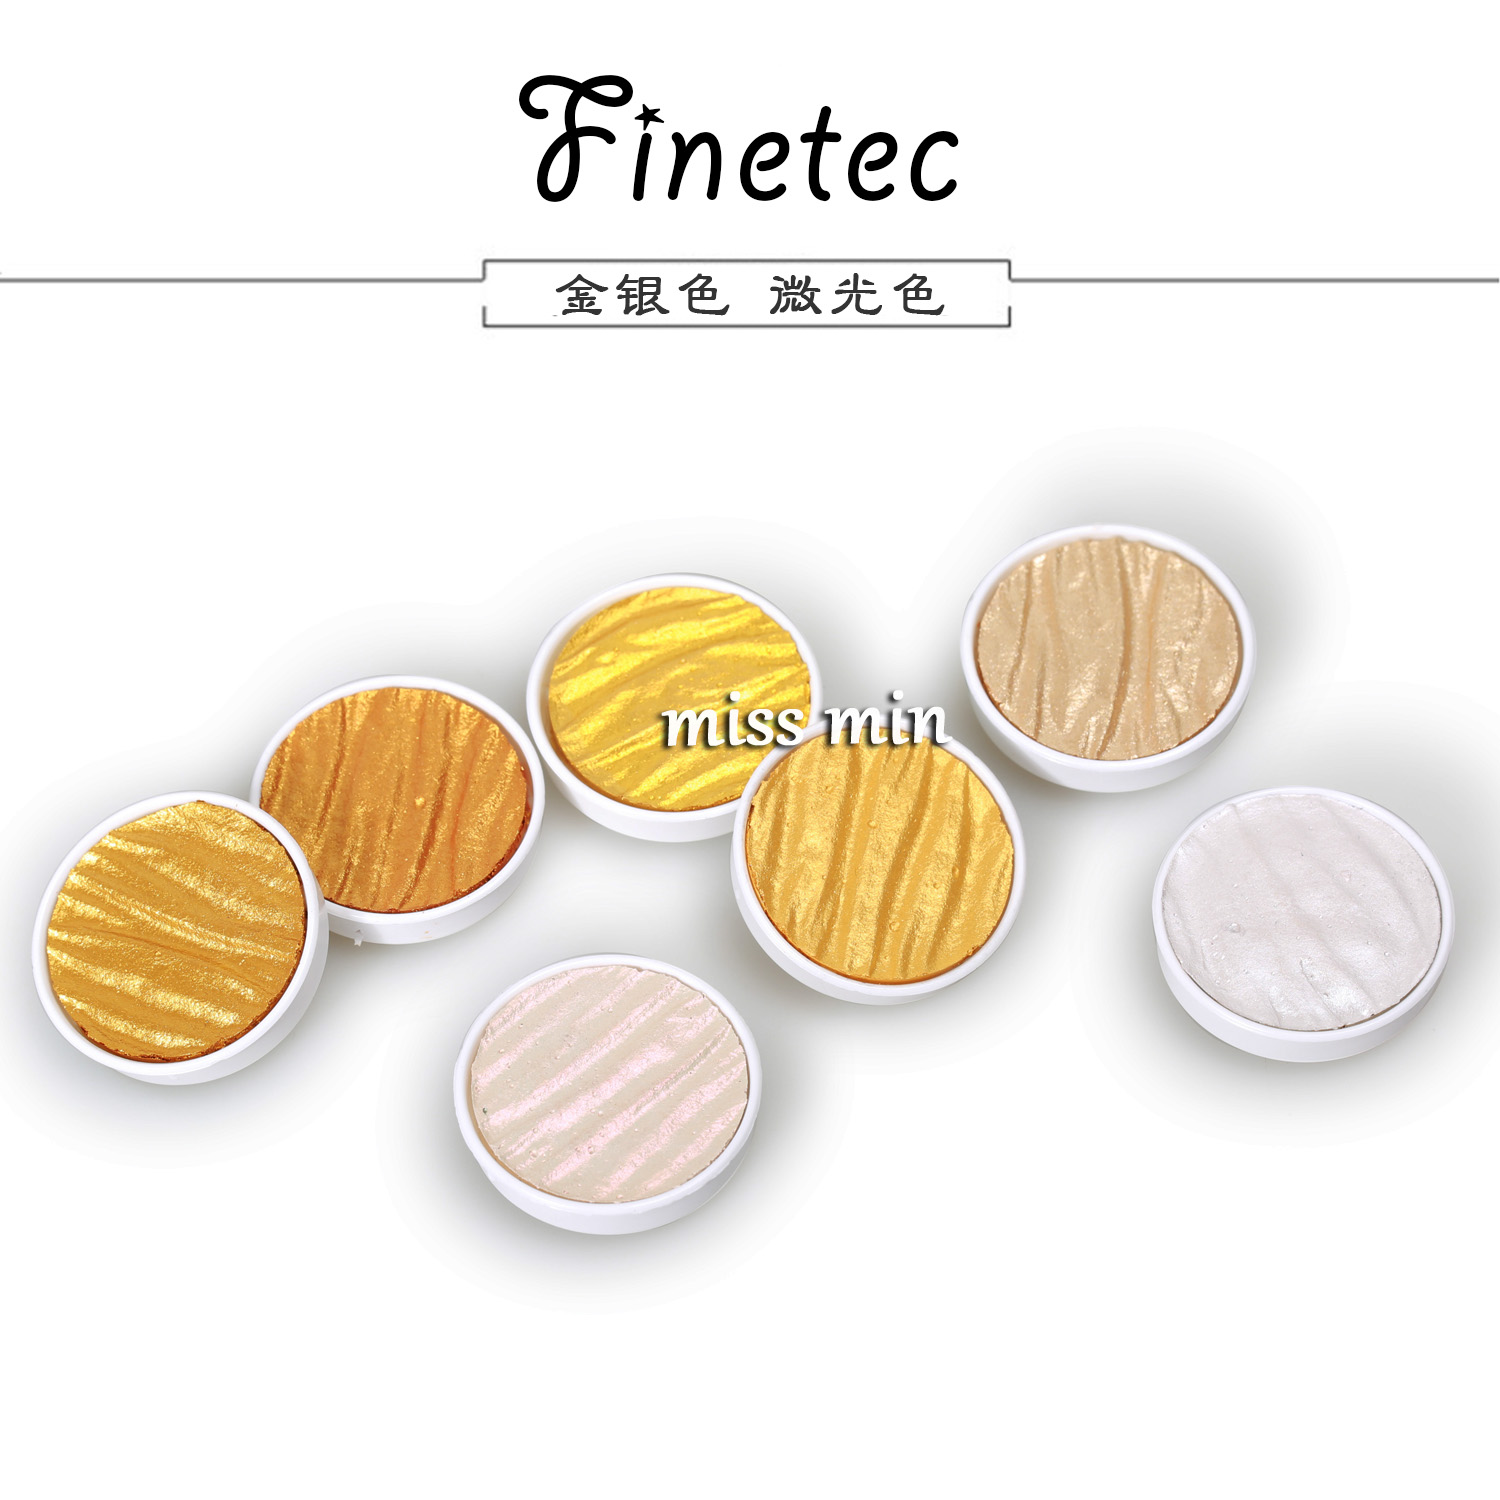 Finetec Pearlescent aquarel Hand-made Solid Watercolor Pigment Waterverf Germany acuarela Gold paint sulu boya gouache verf Finetec Pearlescent aquarel Hand-made Solid Watercolor Pigment Waterverf Germany acuarela Gold paint sulu boya gouache verf